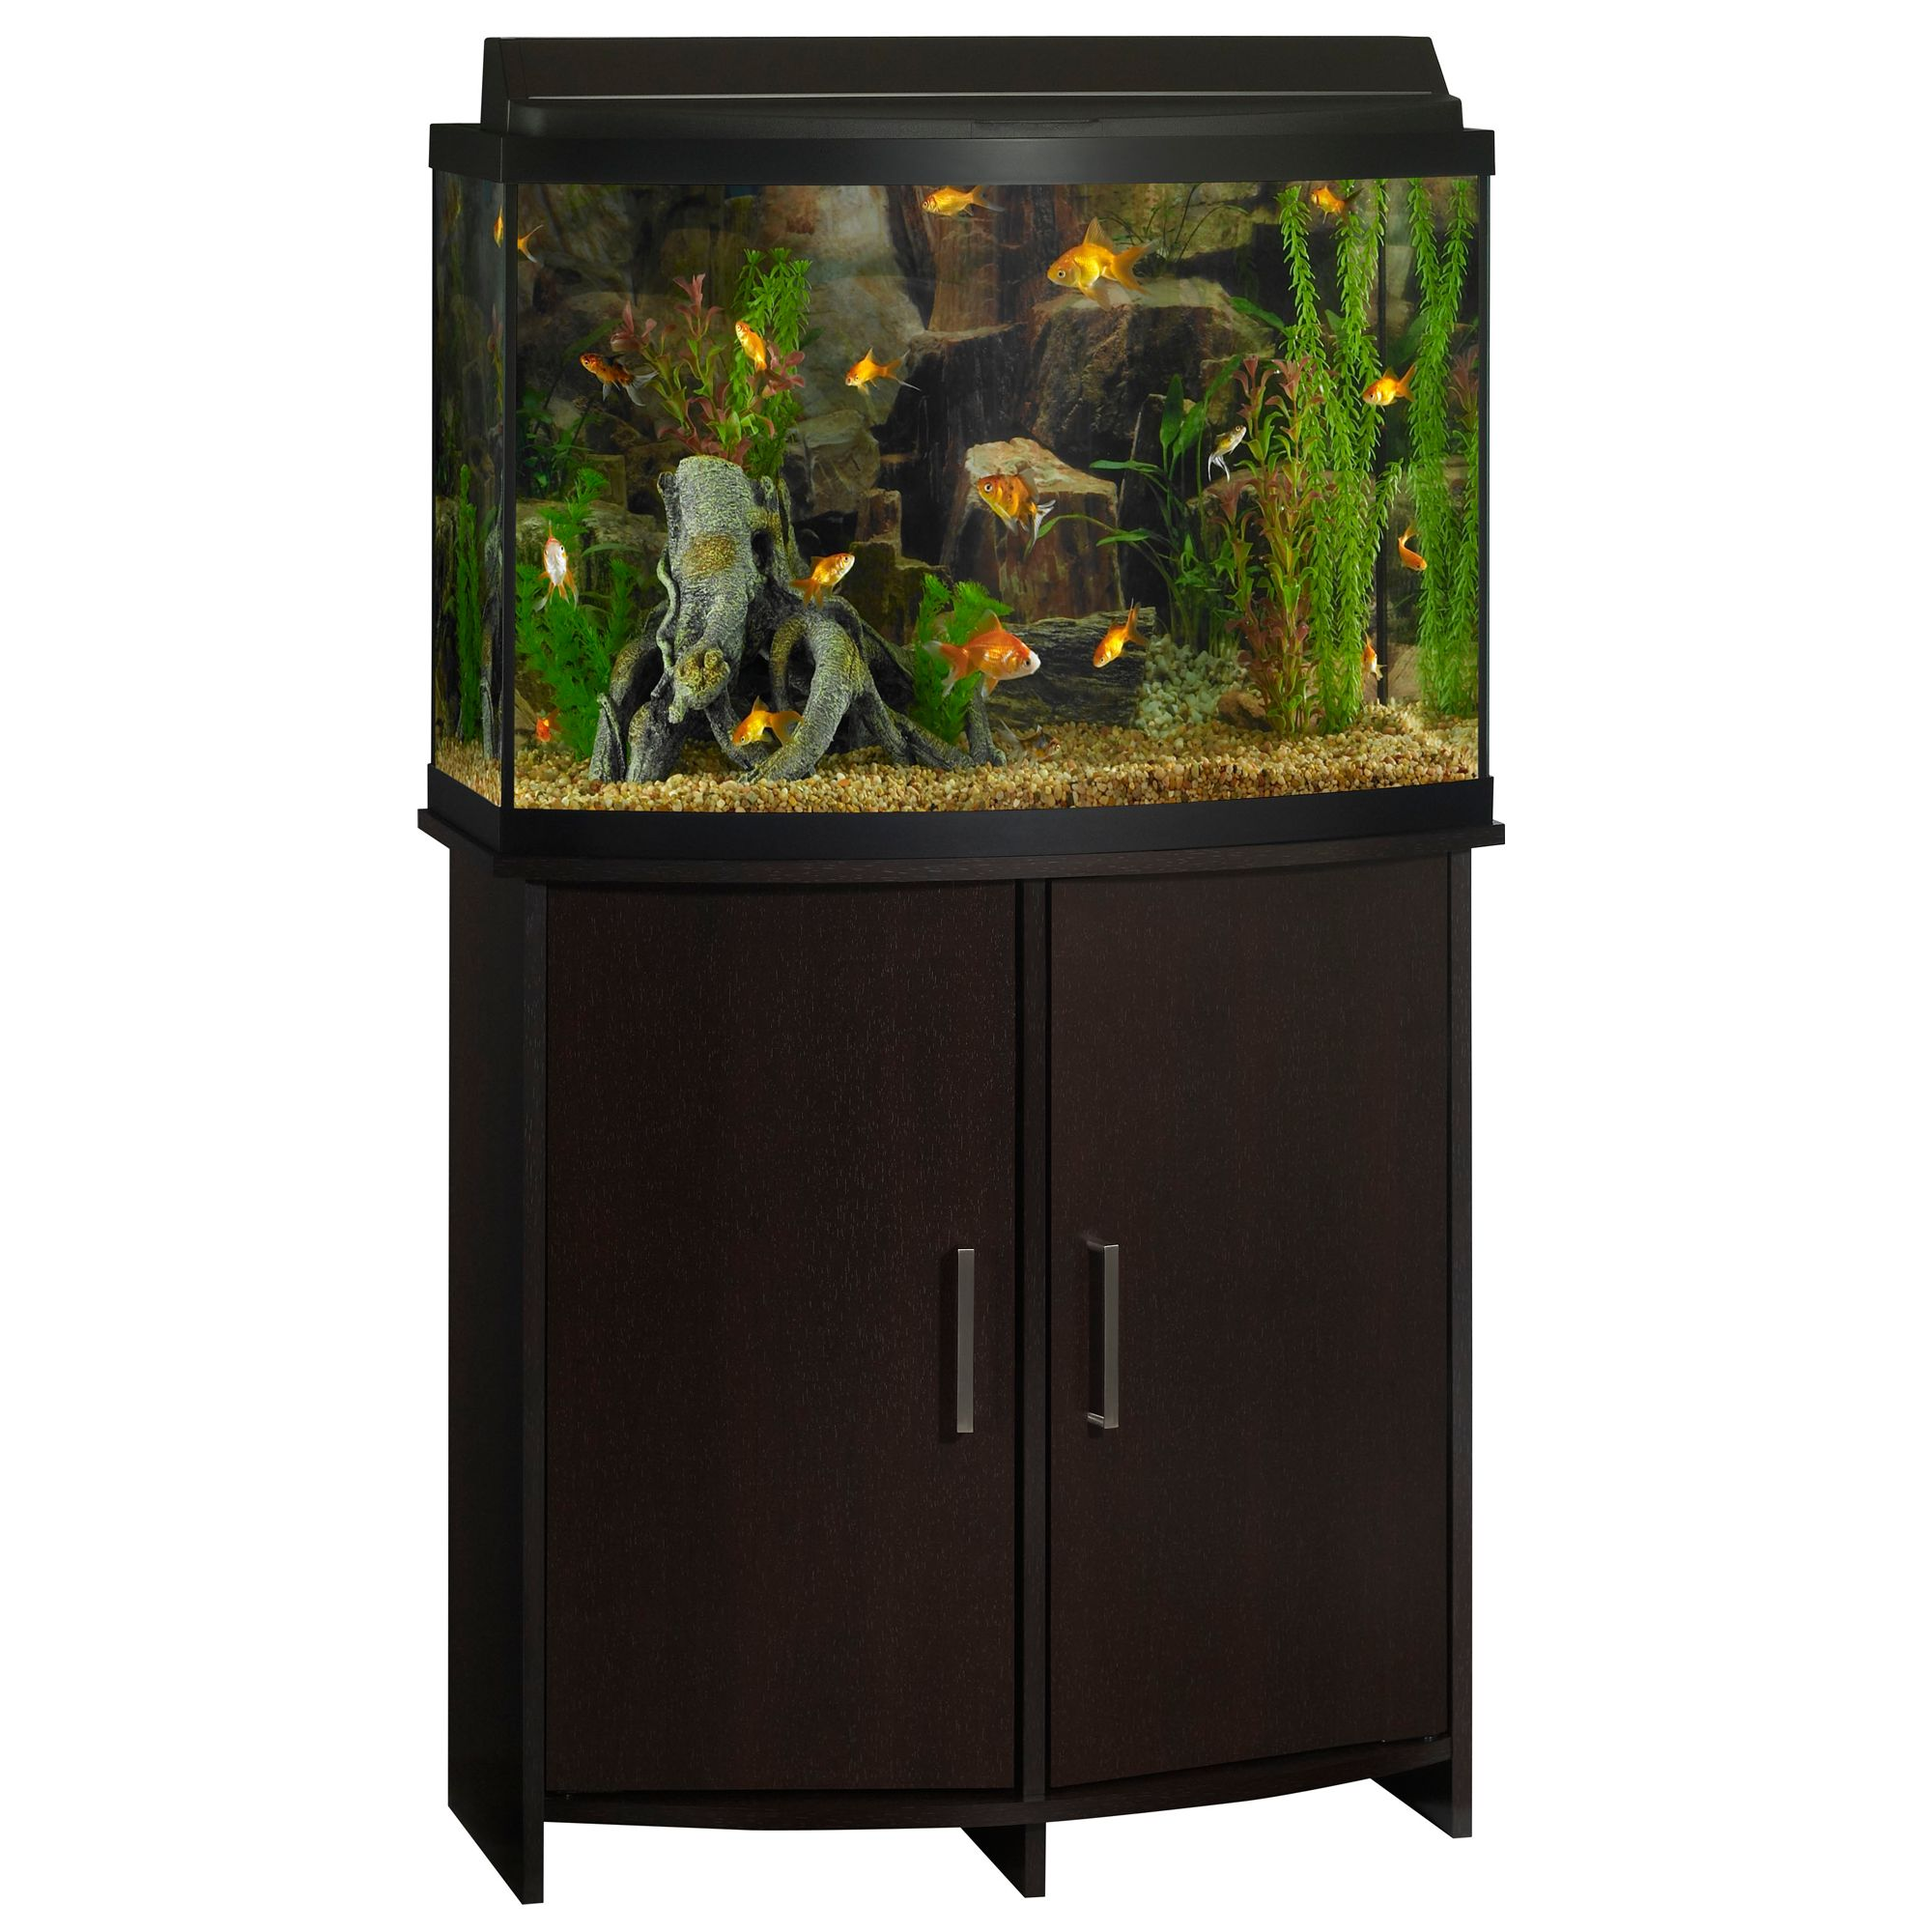 Top fin bowfront aquarium stand size 36 gal black for Petsmart fish tank stand